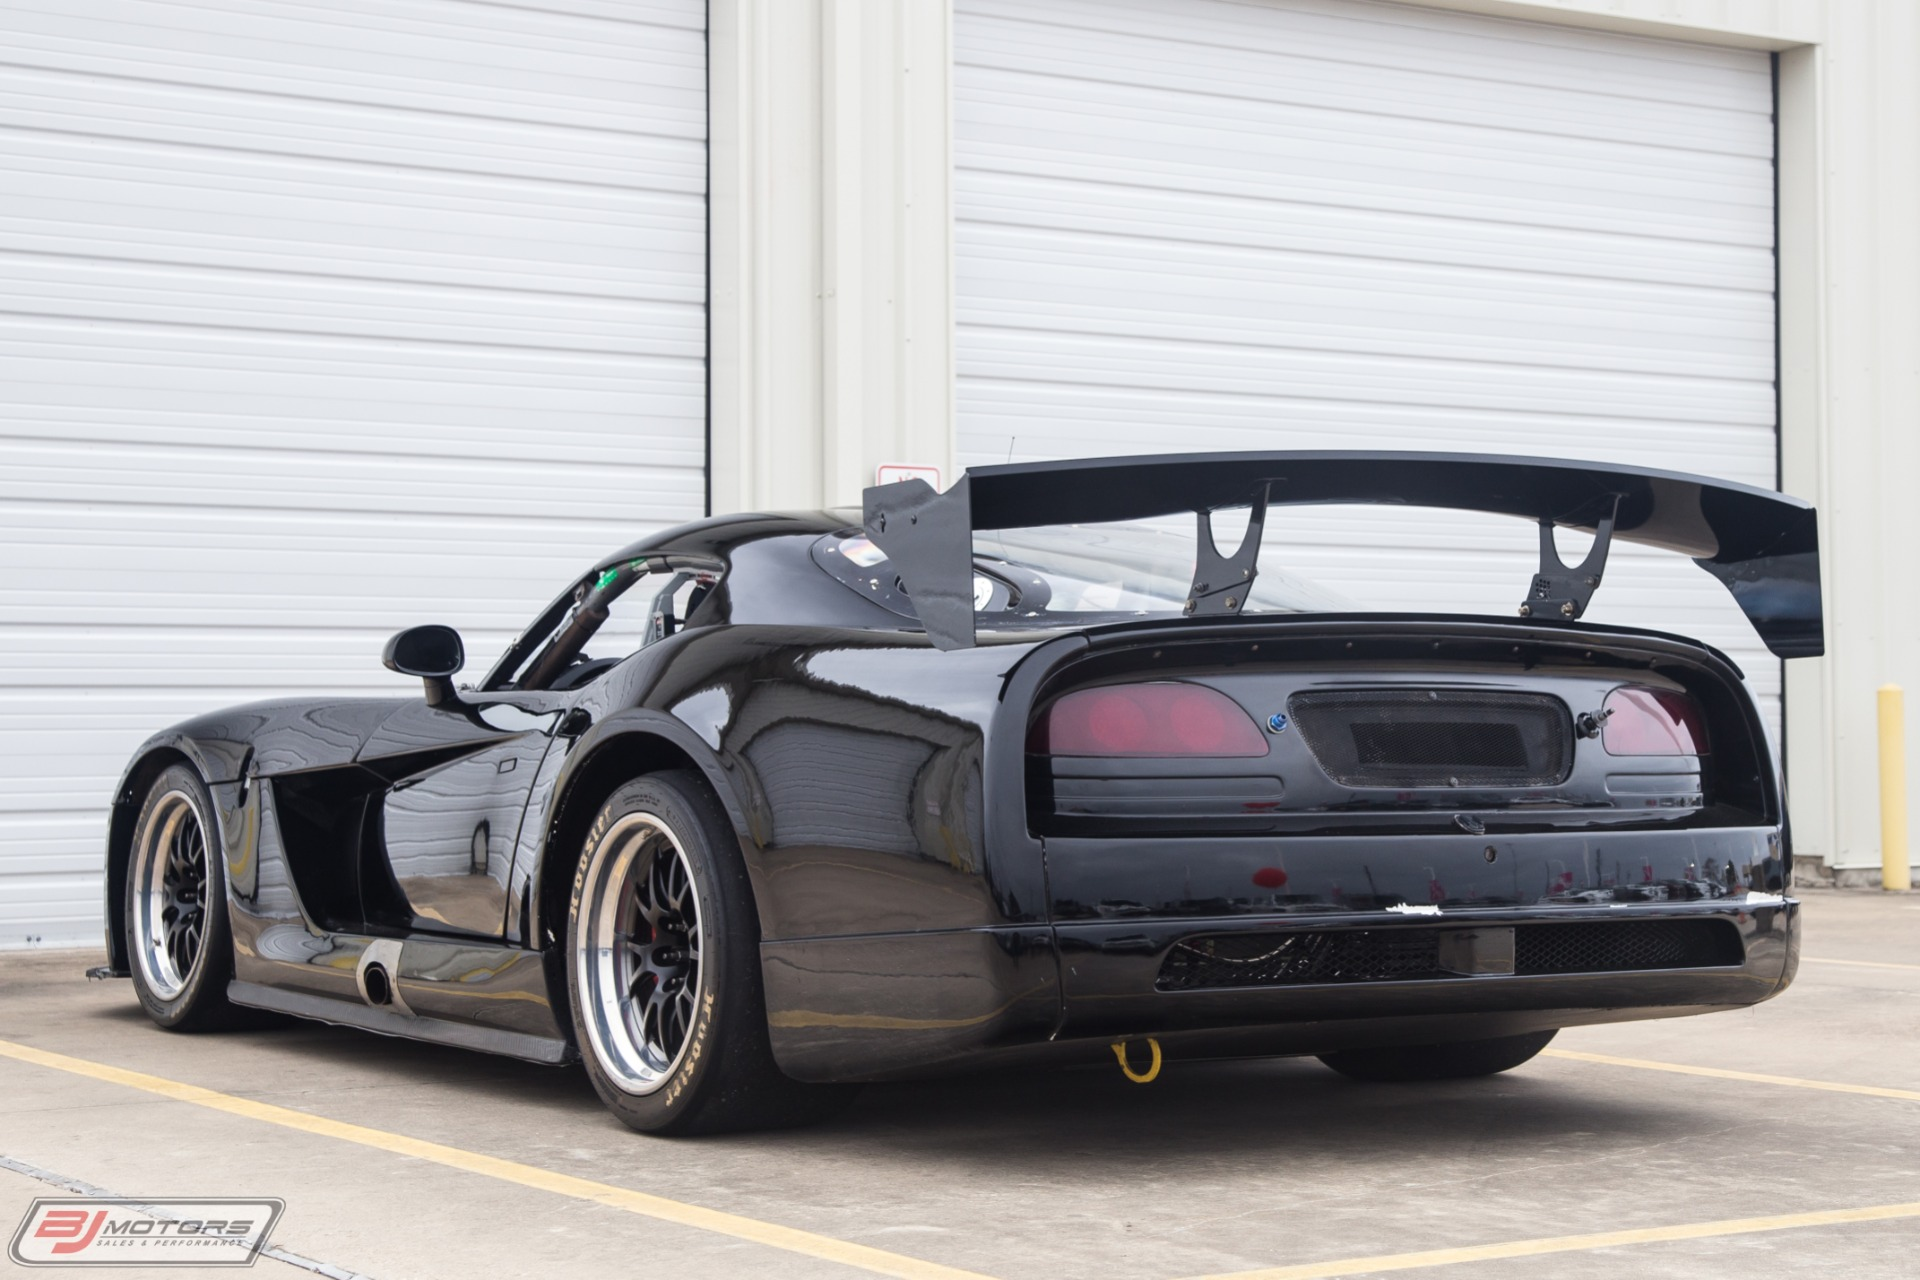 Used-2005-Dodge-Viper-World-Challenge-Competition-Coupe-Dry-Sump